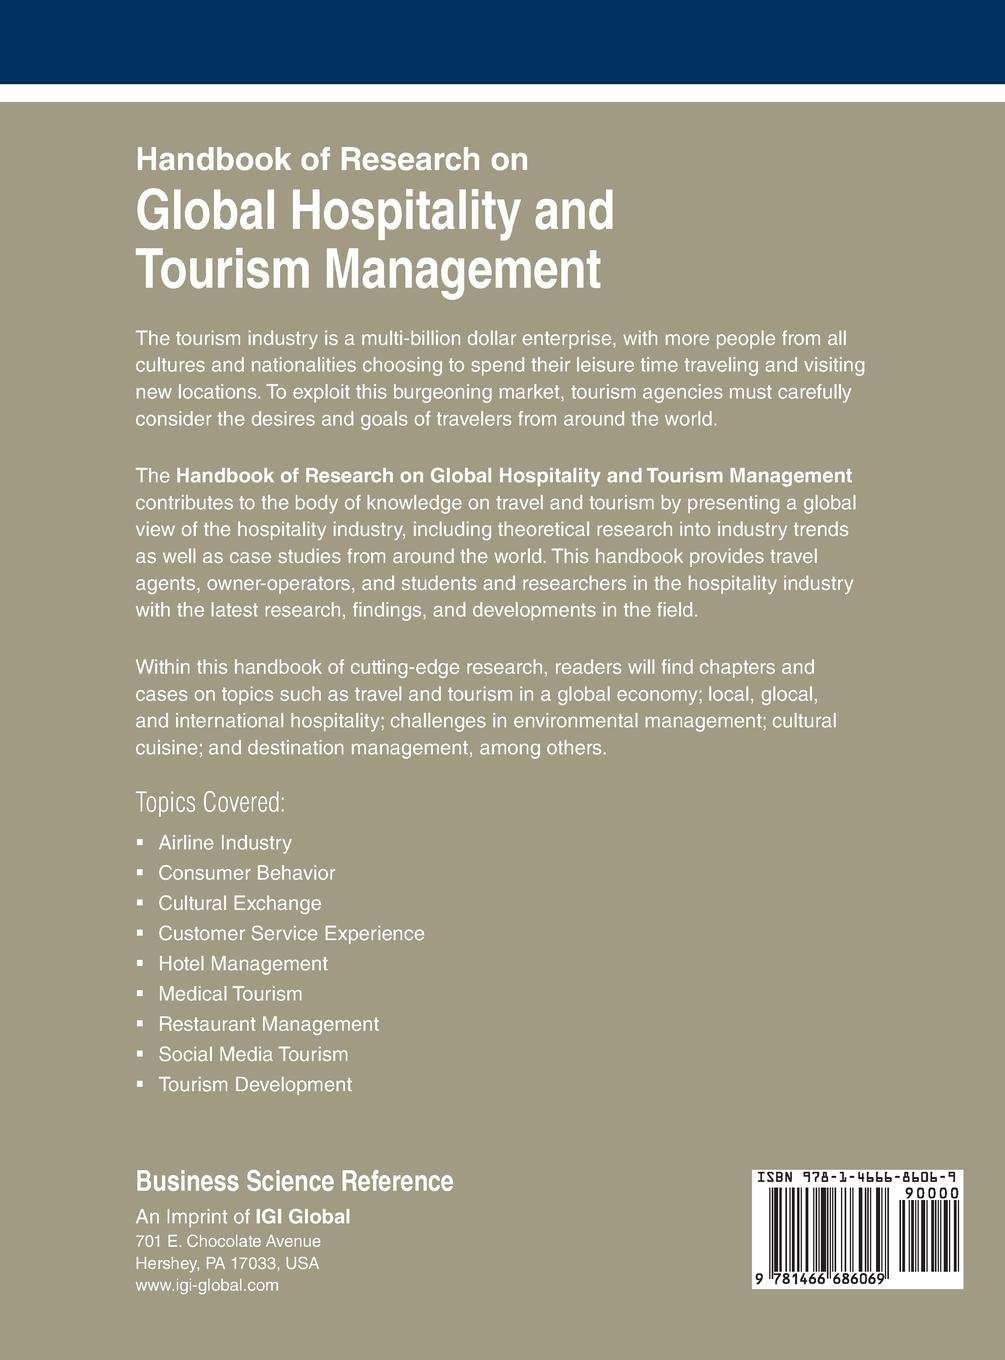 Handbook of Research on Global Hospitality and Tourism